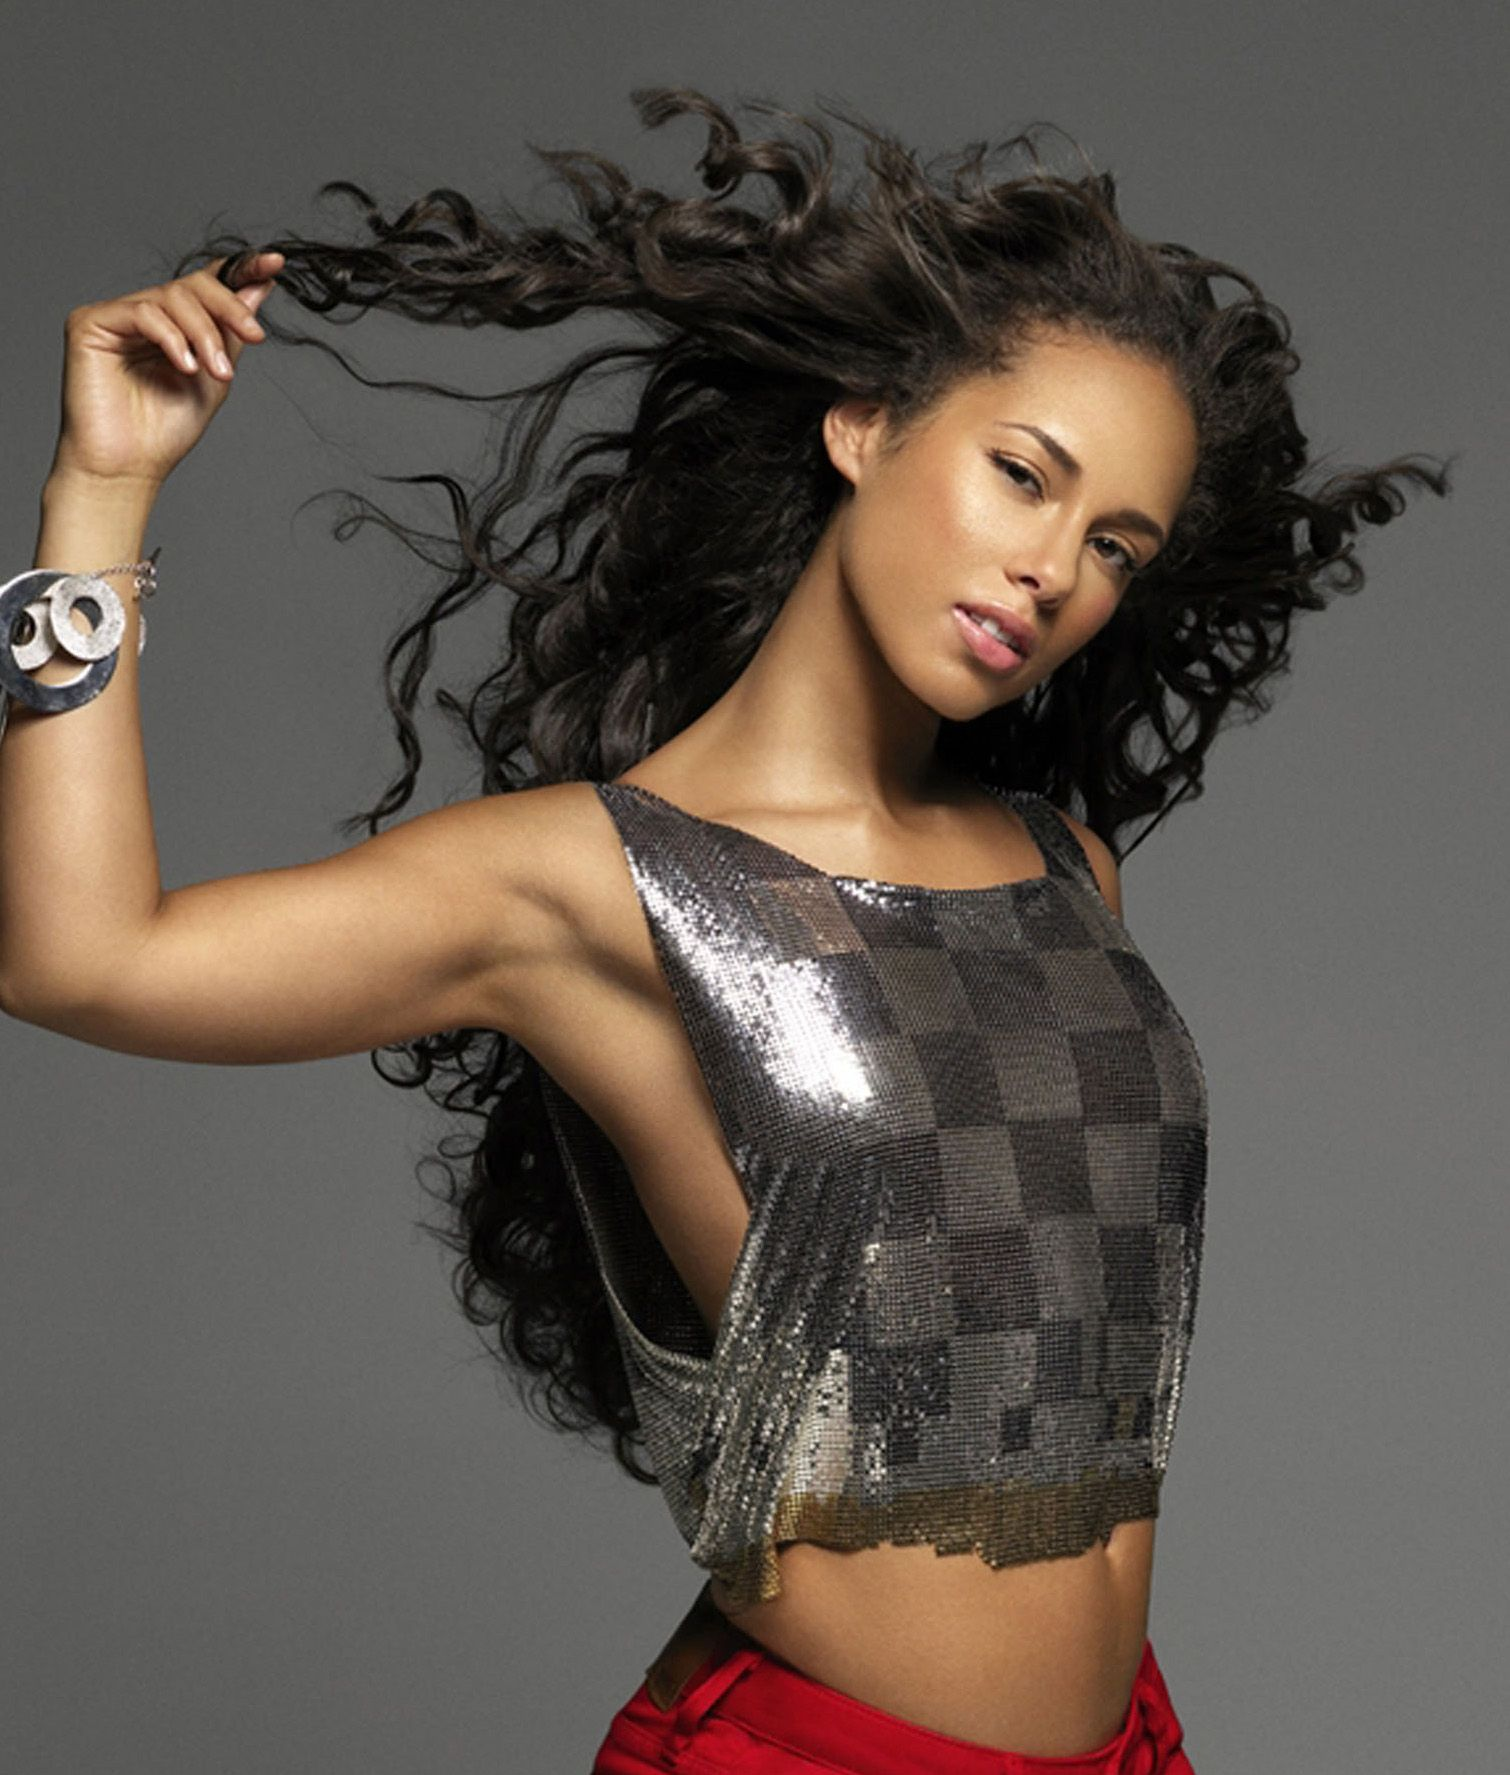 Popular-Singer-Alicia-Keys-Hot-Stills